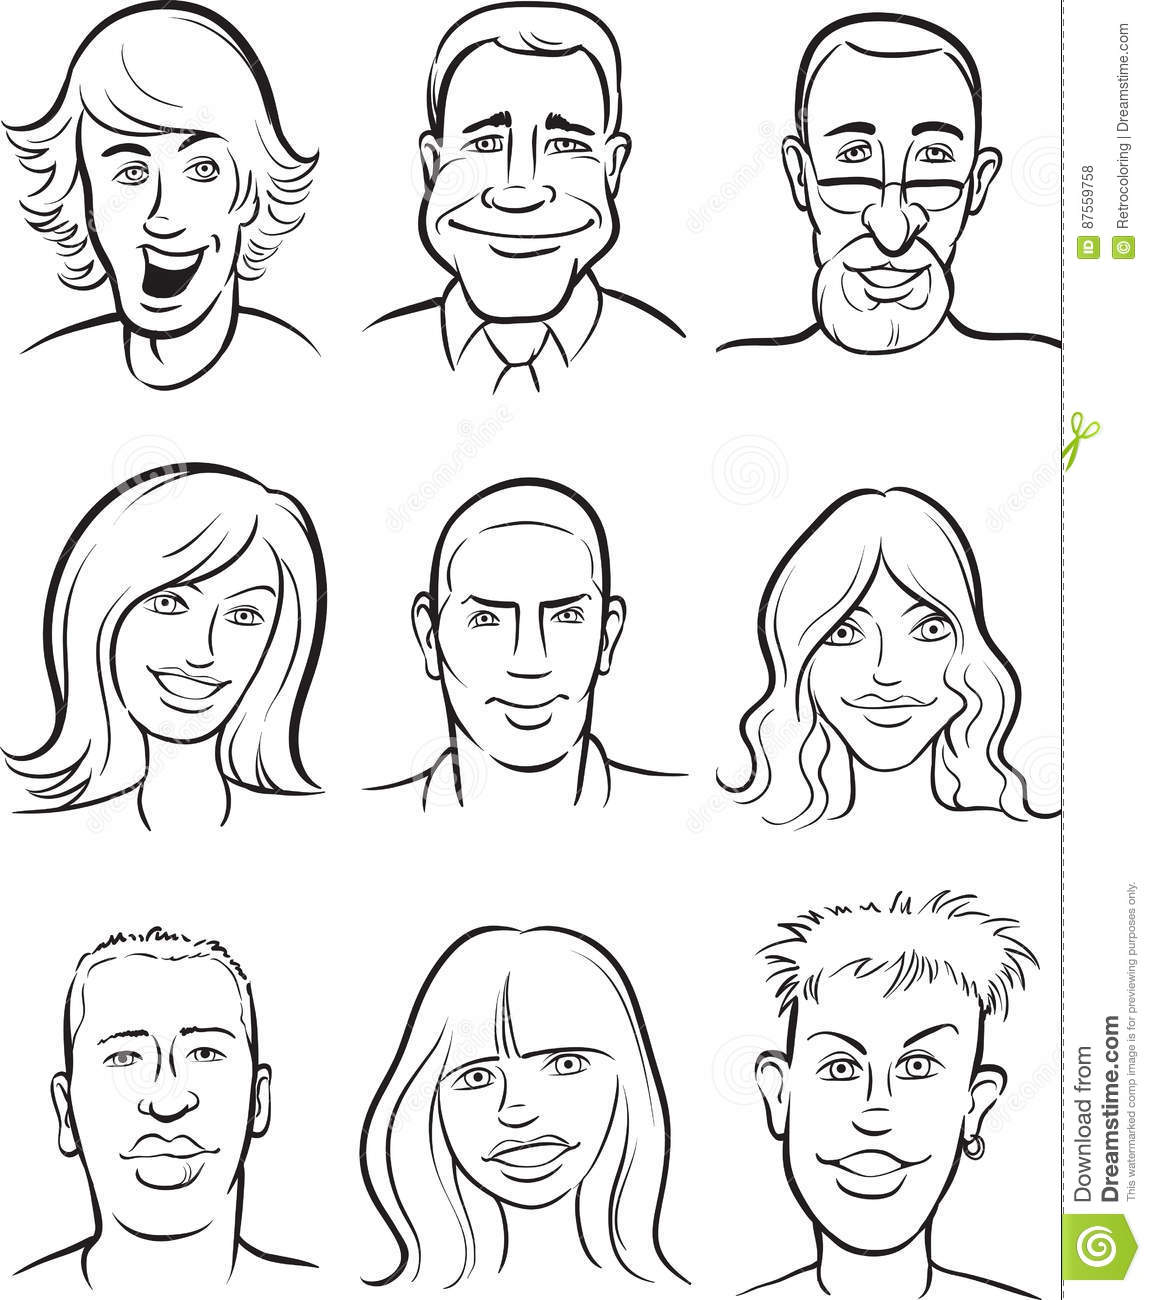 Whiteboard Drawing - People Faces Collection Stock Vector ...